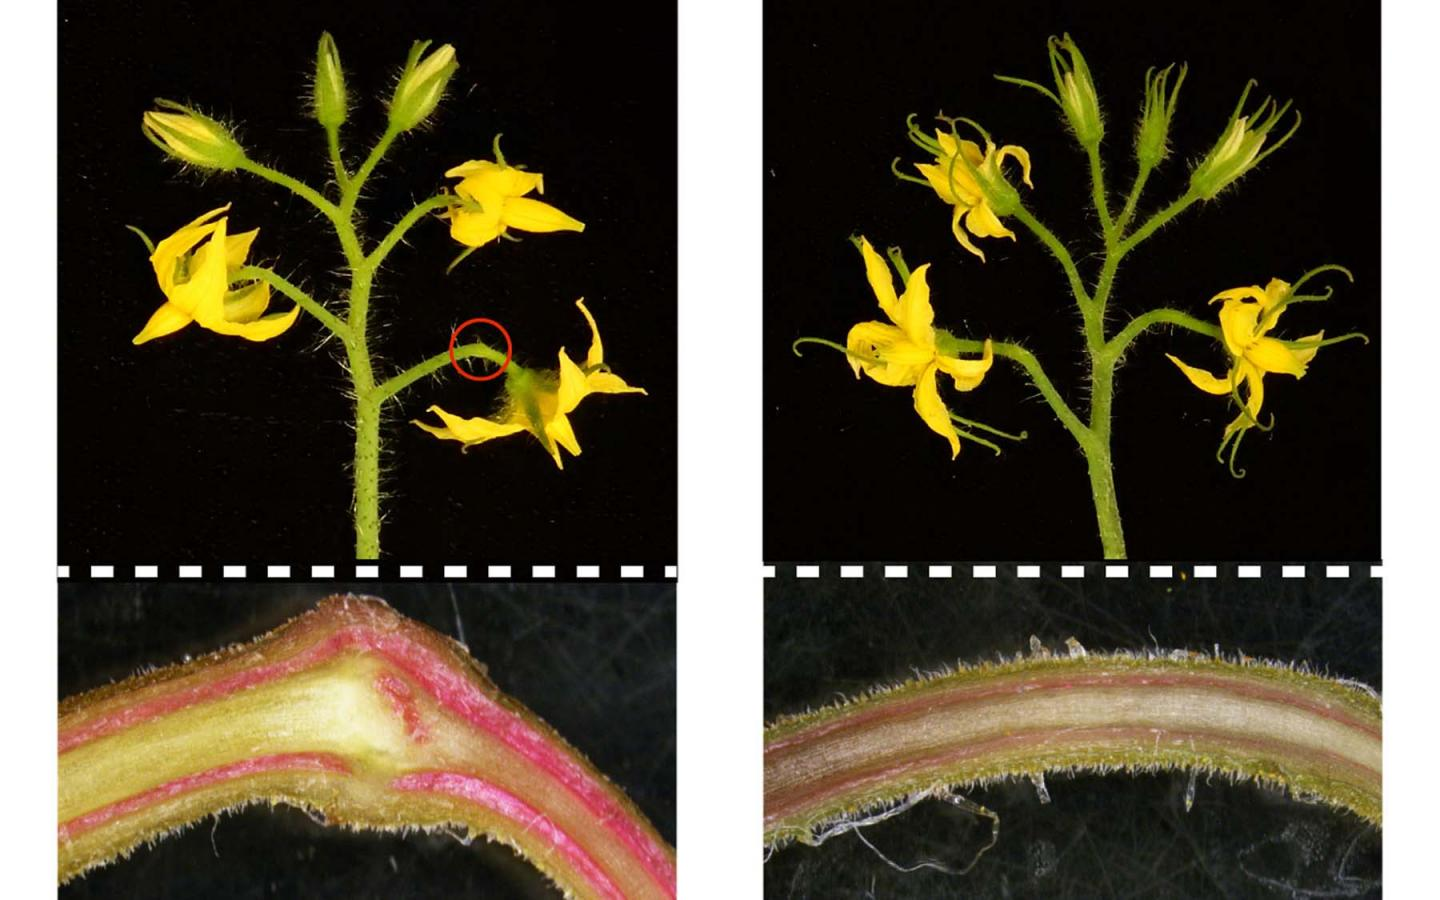 Cautionary Tale Of 4 Year Old Autistic >> Cryptic Mutation Is Cautionary Tale For Crop Gene Editing Scienmag